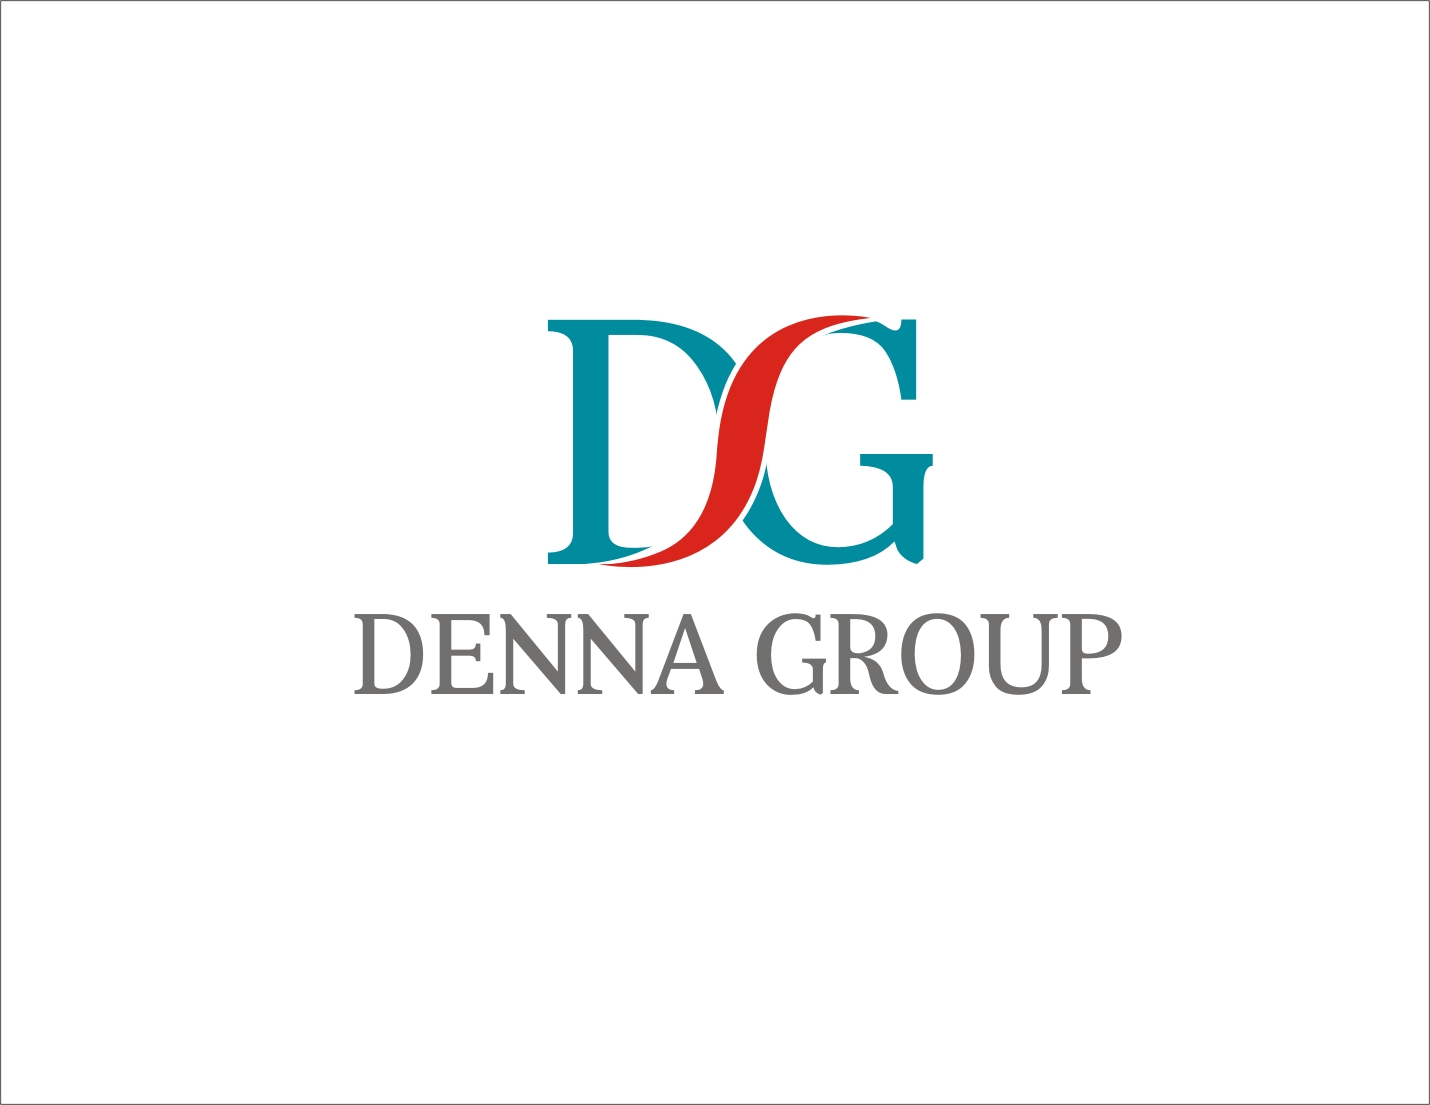 Logo Design by Private User - Entry No. 109 in the Logo Design Contest Denna Group Logo Design.